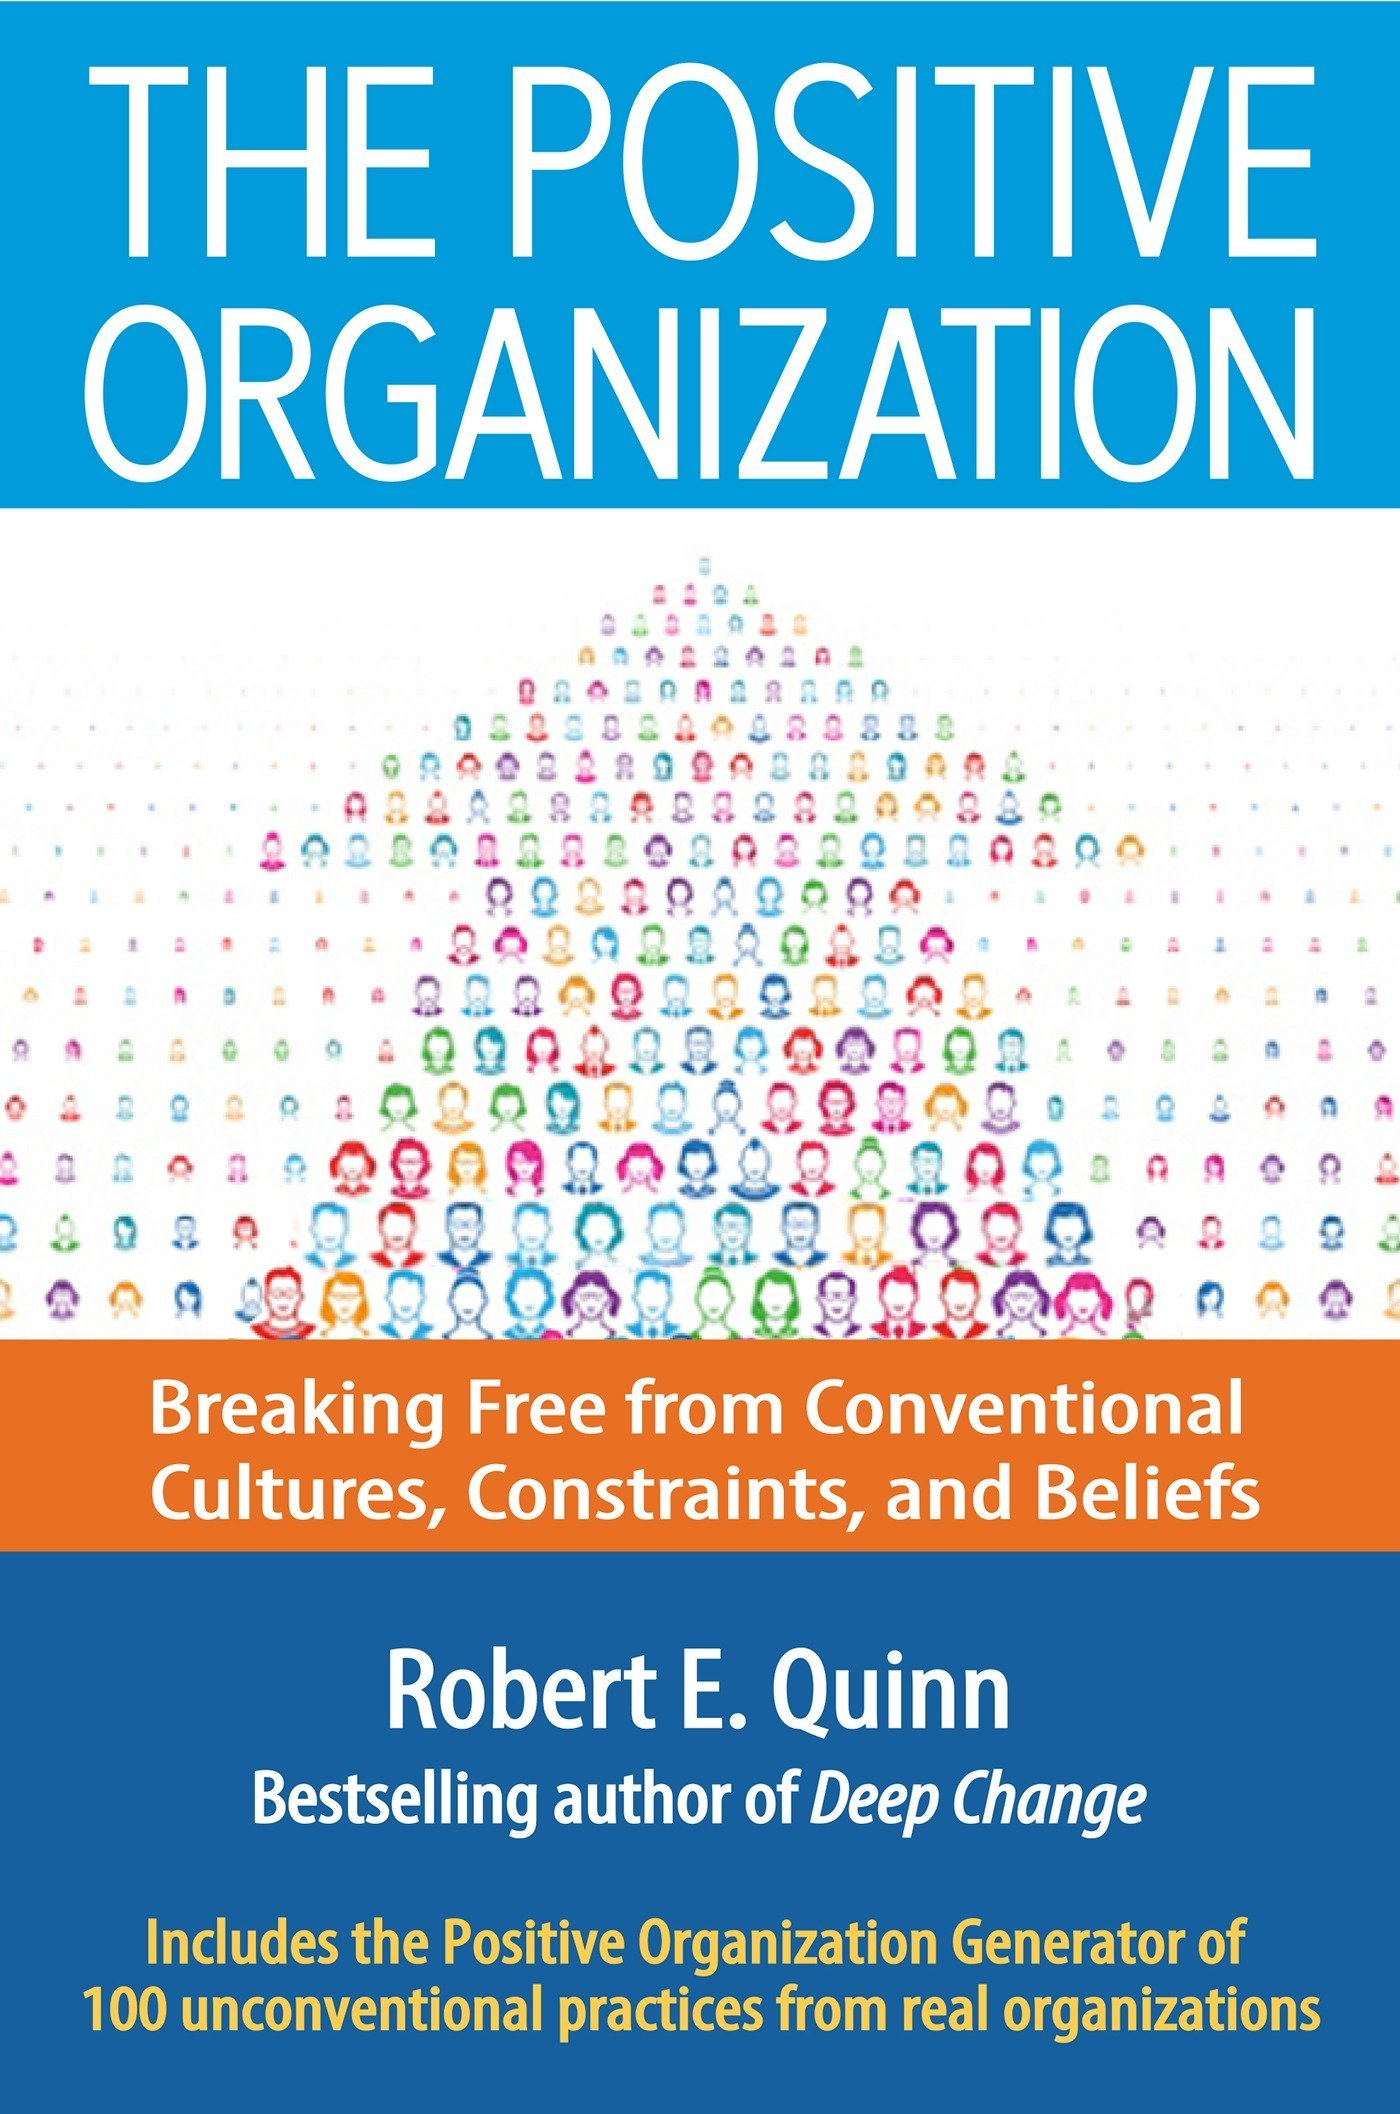 The Positive Organization: Breaking Free from Conventional Cultures, Constraints, and Beliefs PDF